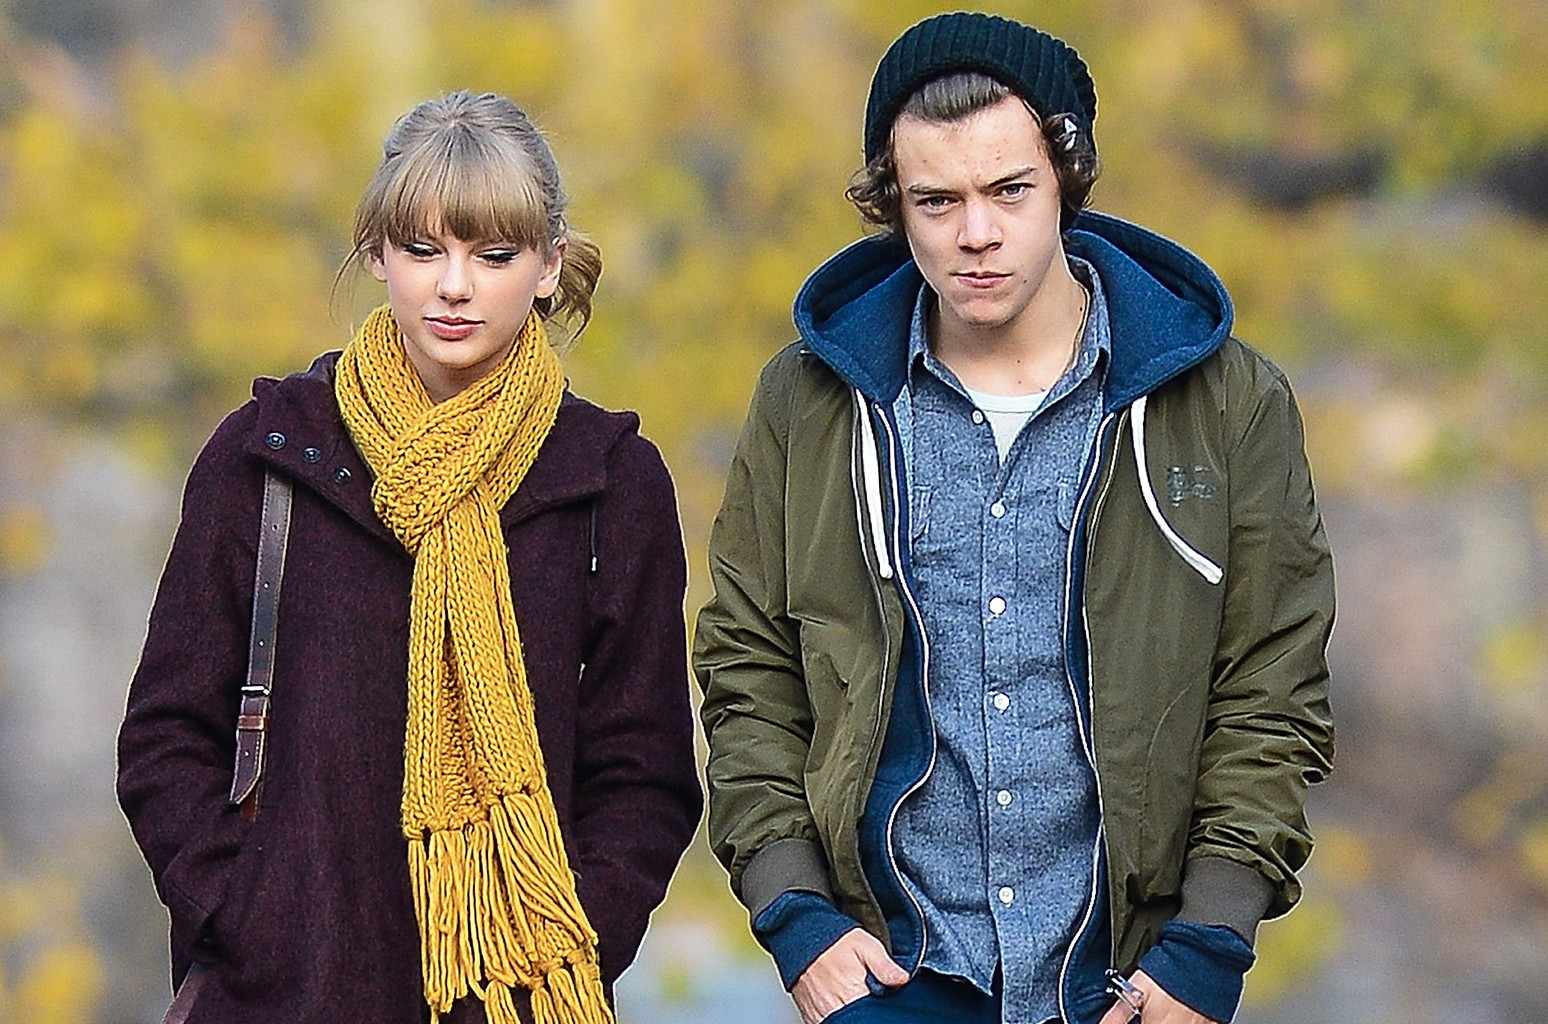 Harry Styles Opens Up About How His Relationship With Taylor Swift Was A Learning Experience Billboard